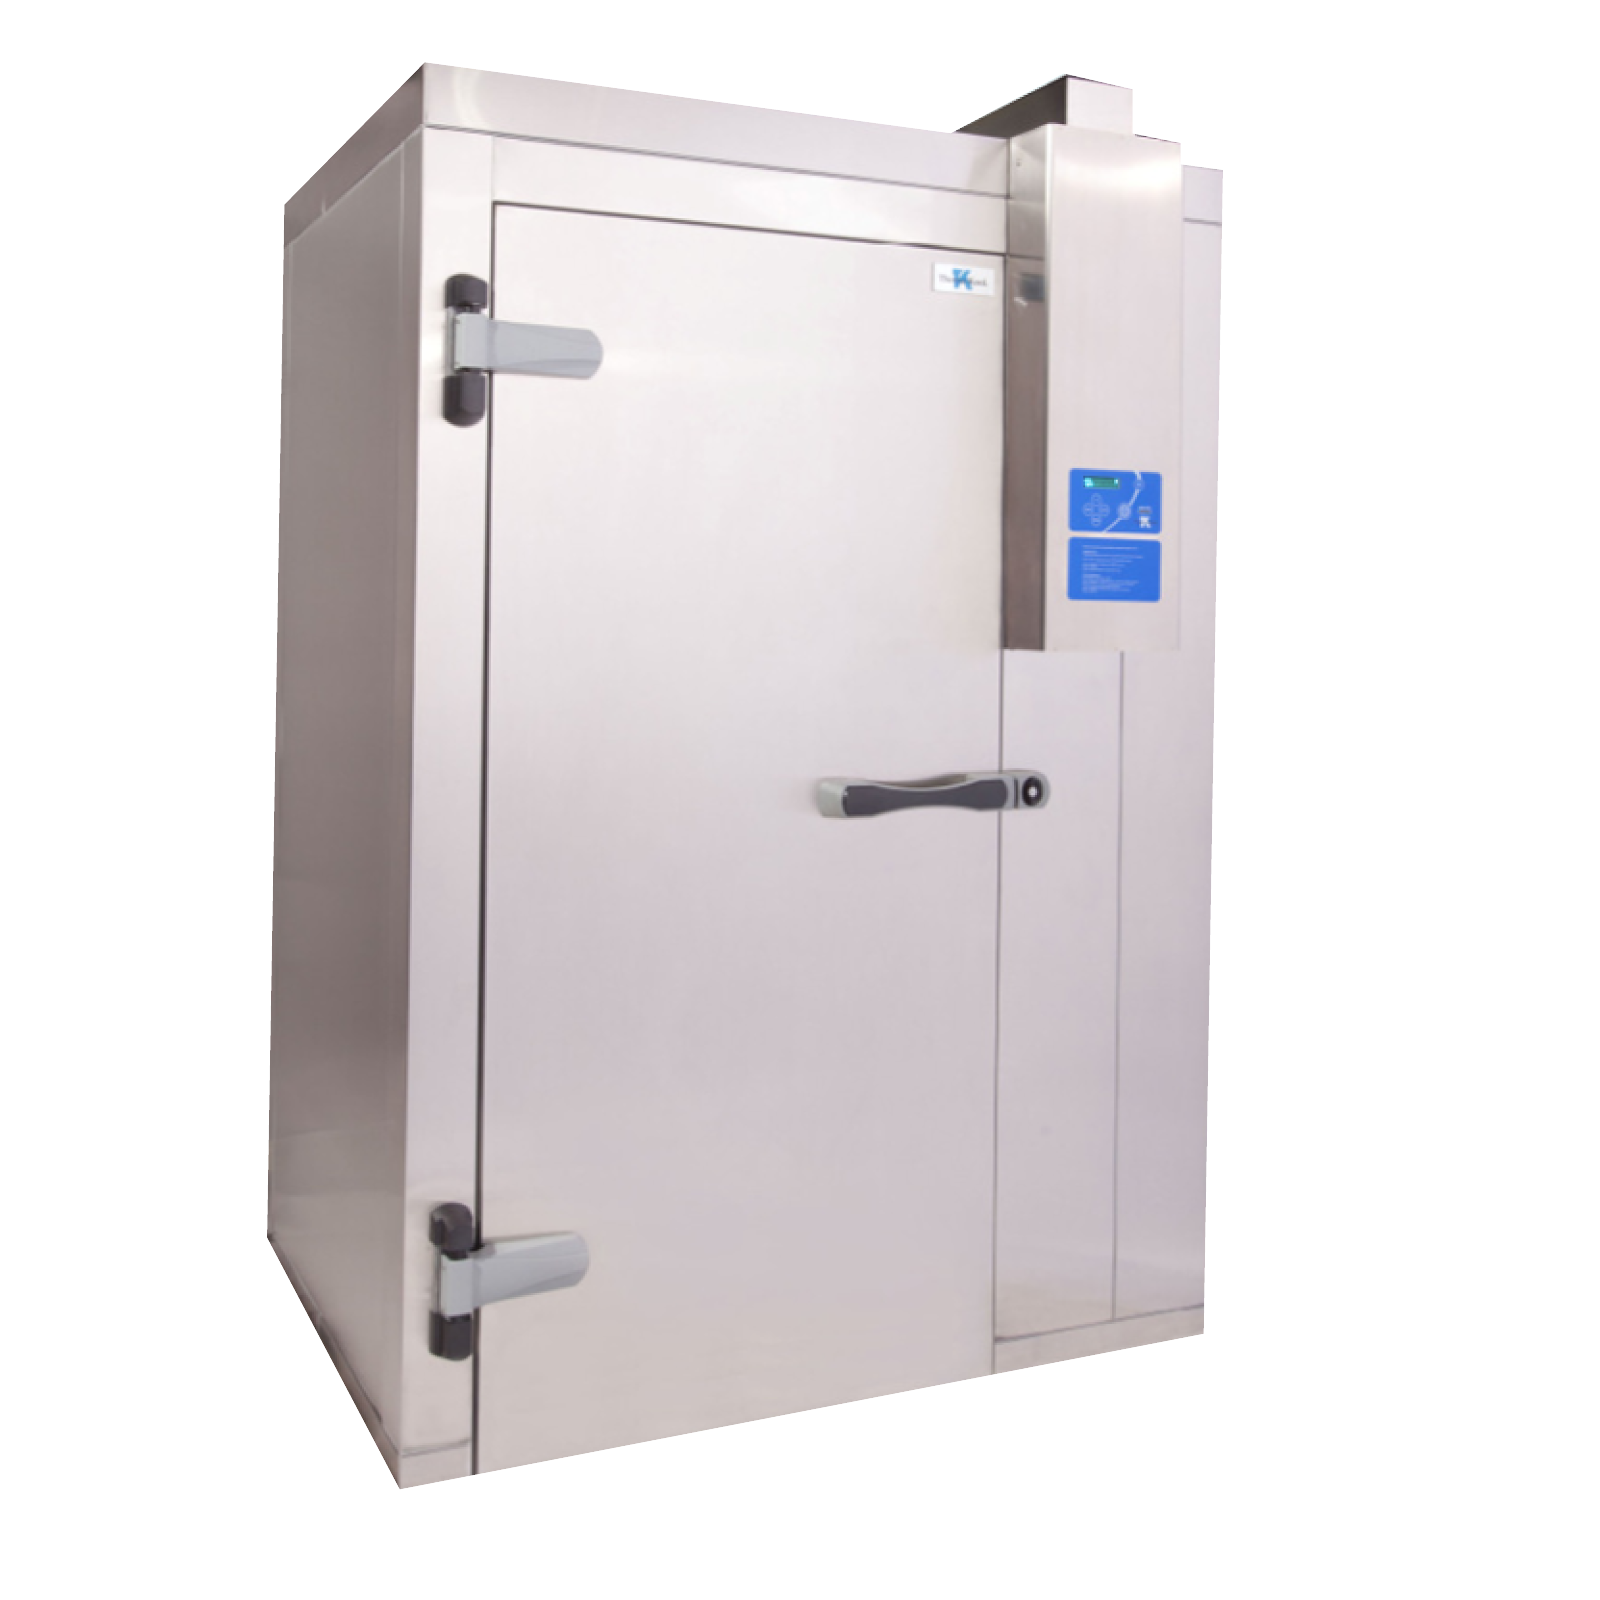 Image of the TK26BC-1 blast chiller by Thermo-Kool